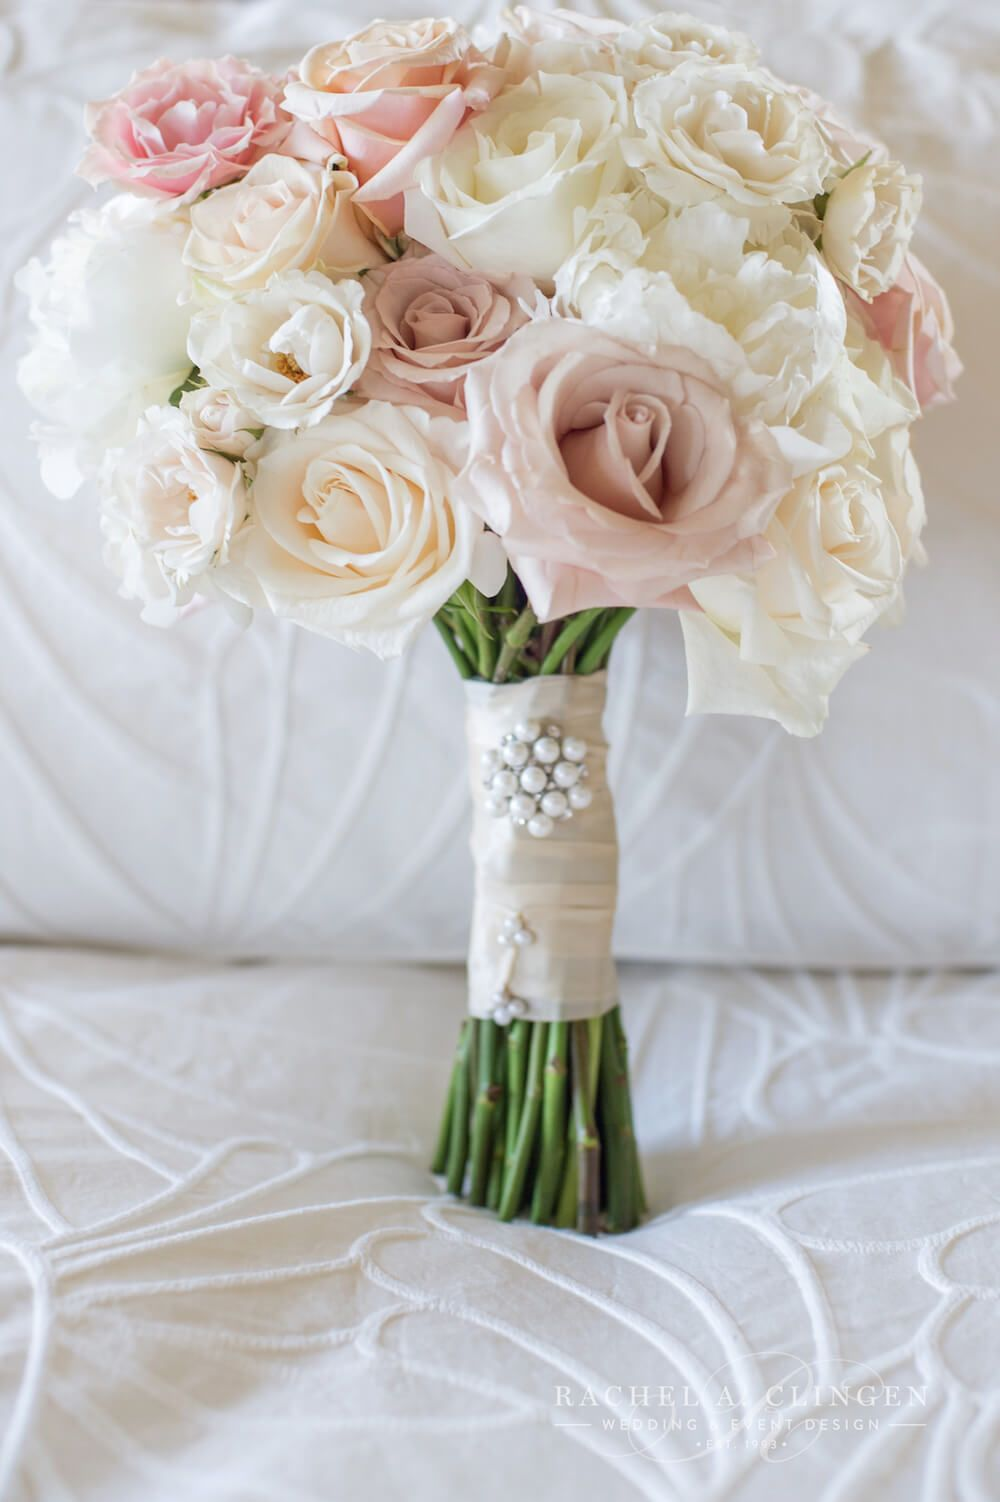 Ivory Pink Blush Wedding Bouquet Finished With Satin Bow Designed By Rachel A